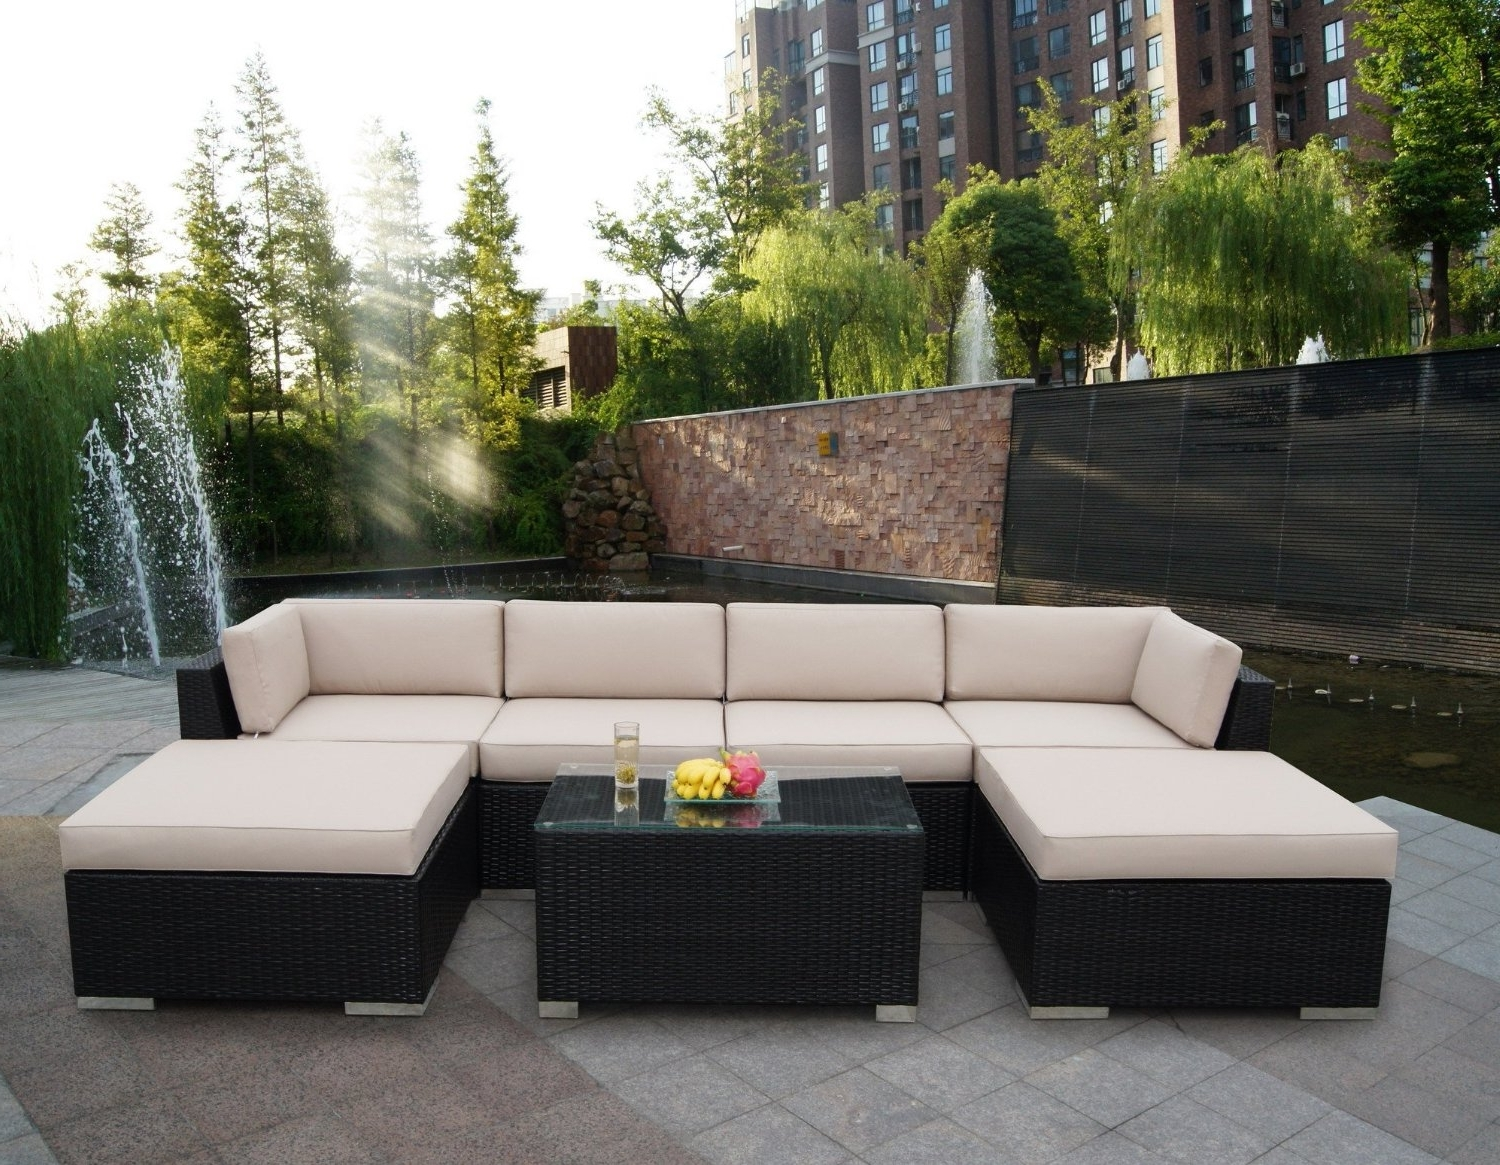 Patio Sofas Inside Most Up To Date Enjoy Having Outdoor Patio Sets At Your Lawn – Bellissimainteriors (View 9 of 15)